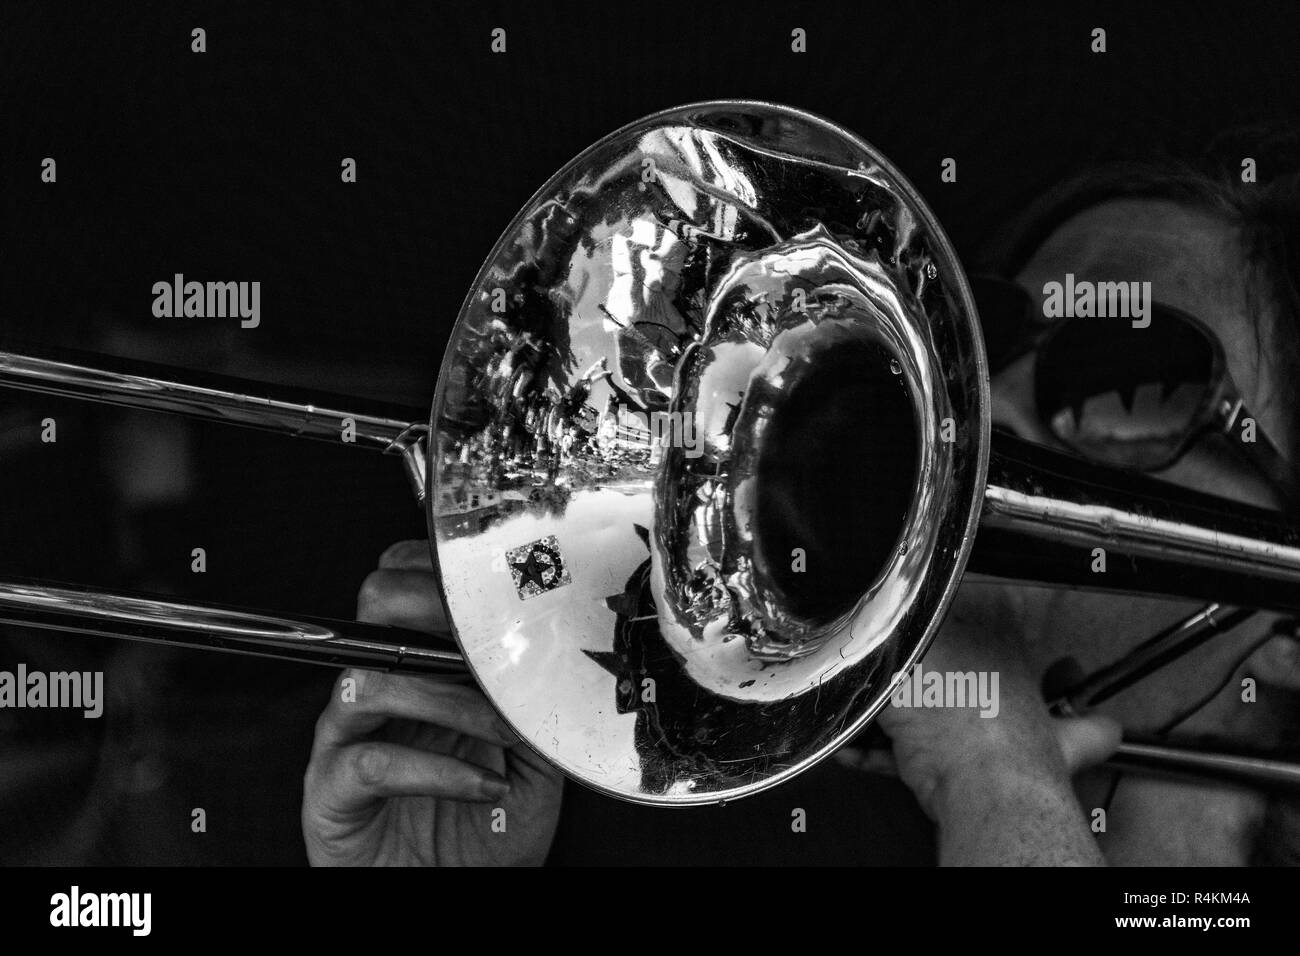 Brass Disciple: Black and White Processed, Close-Up Detail of a Trombone with player. - Stock Image